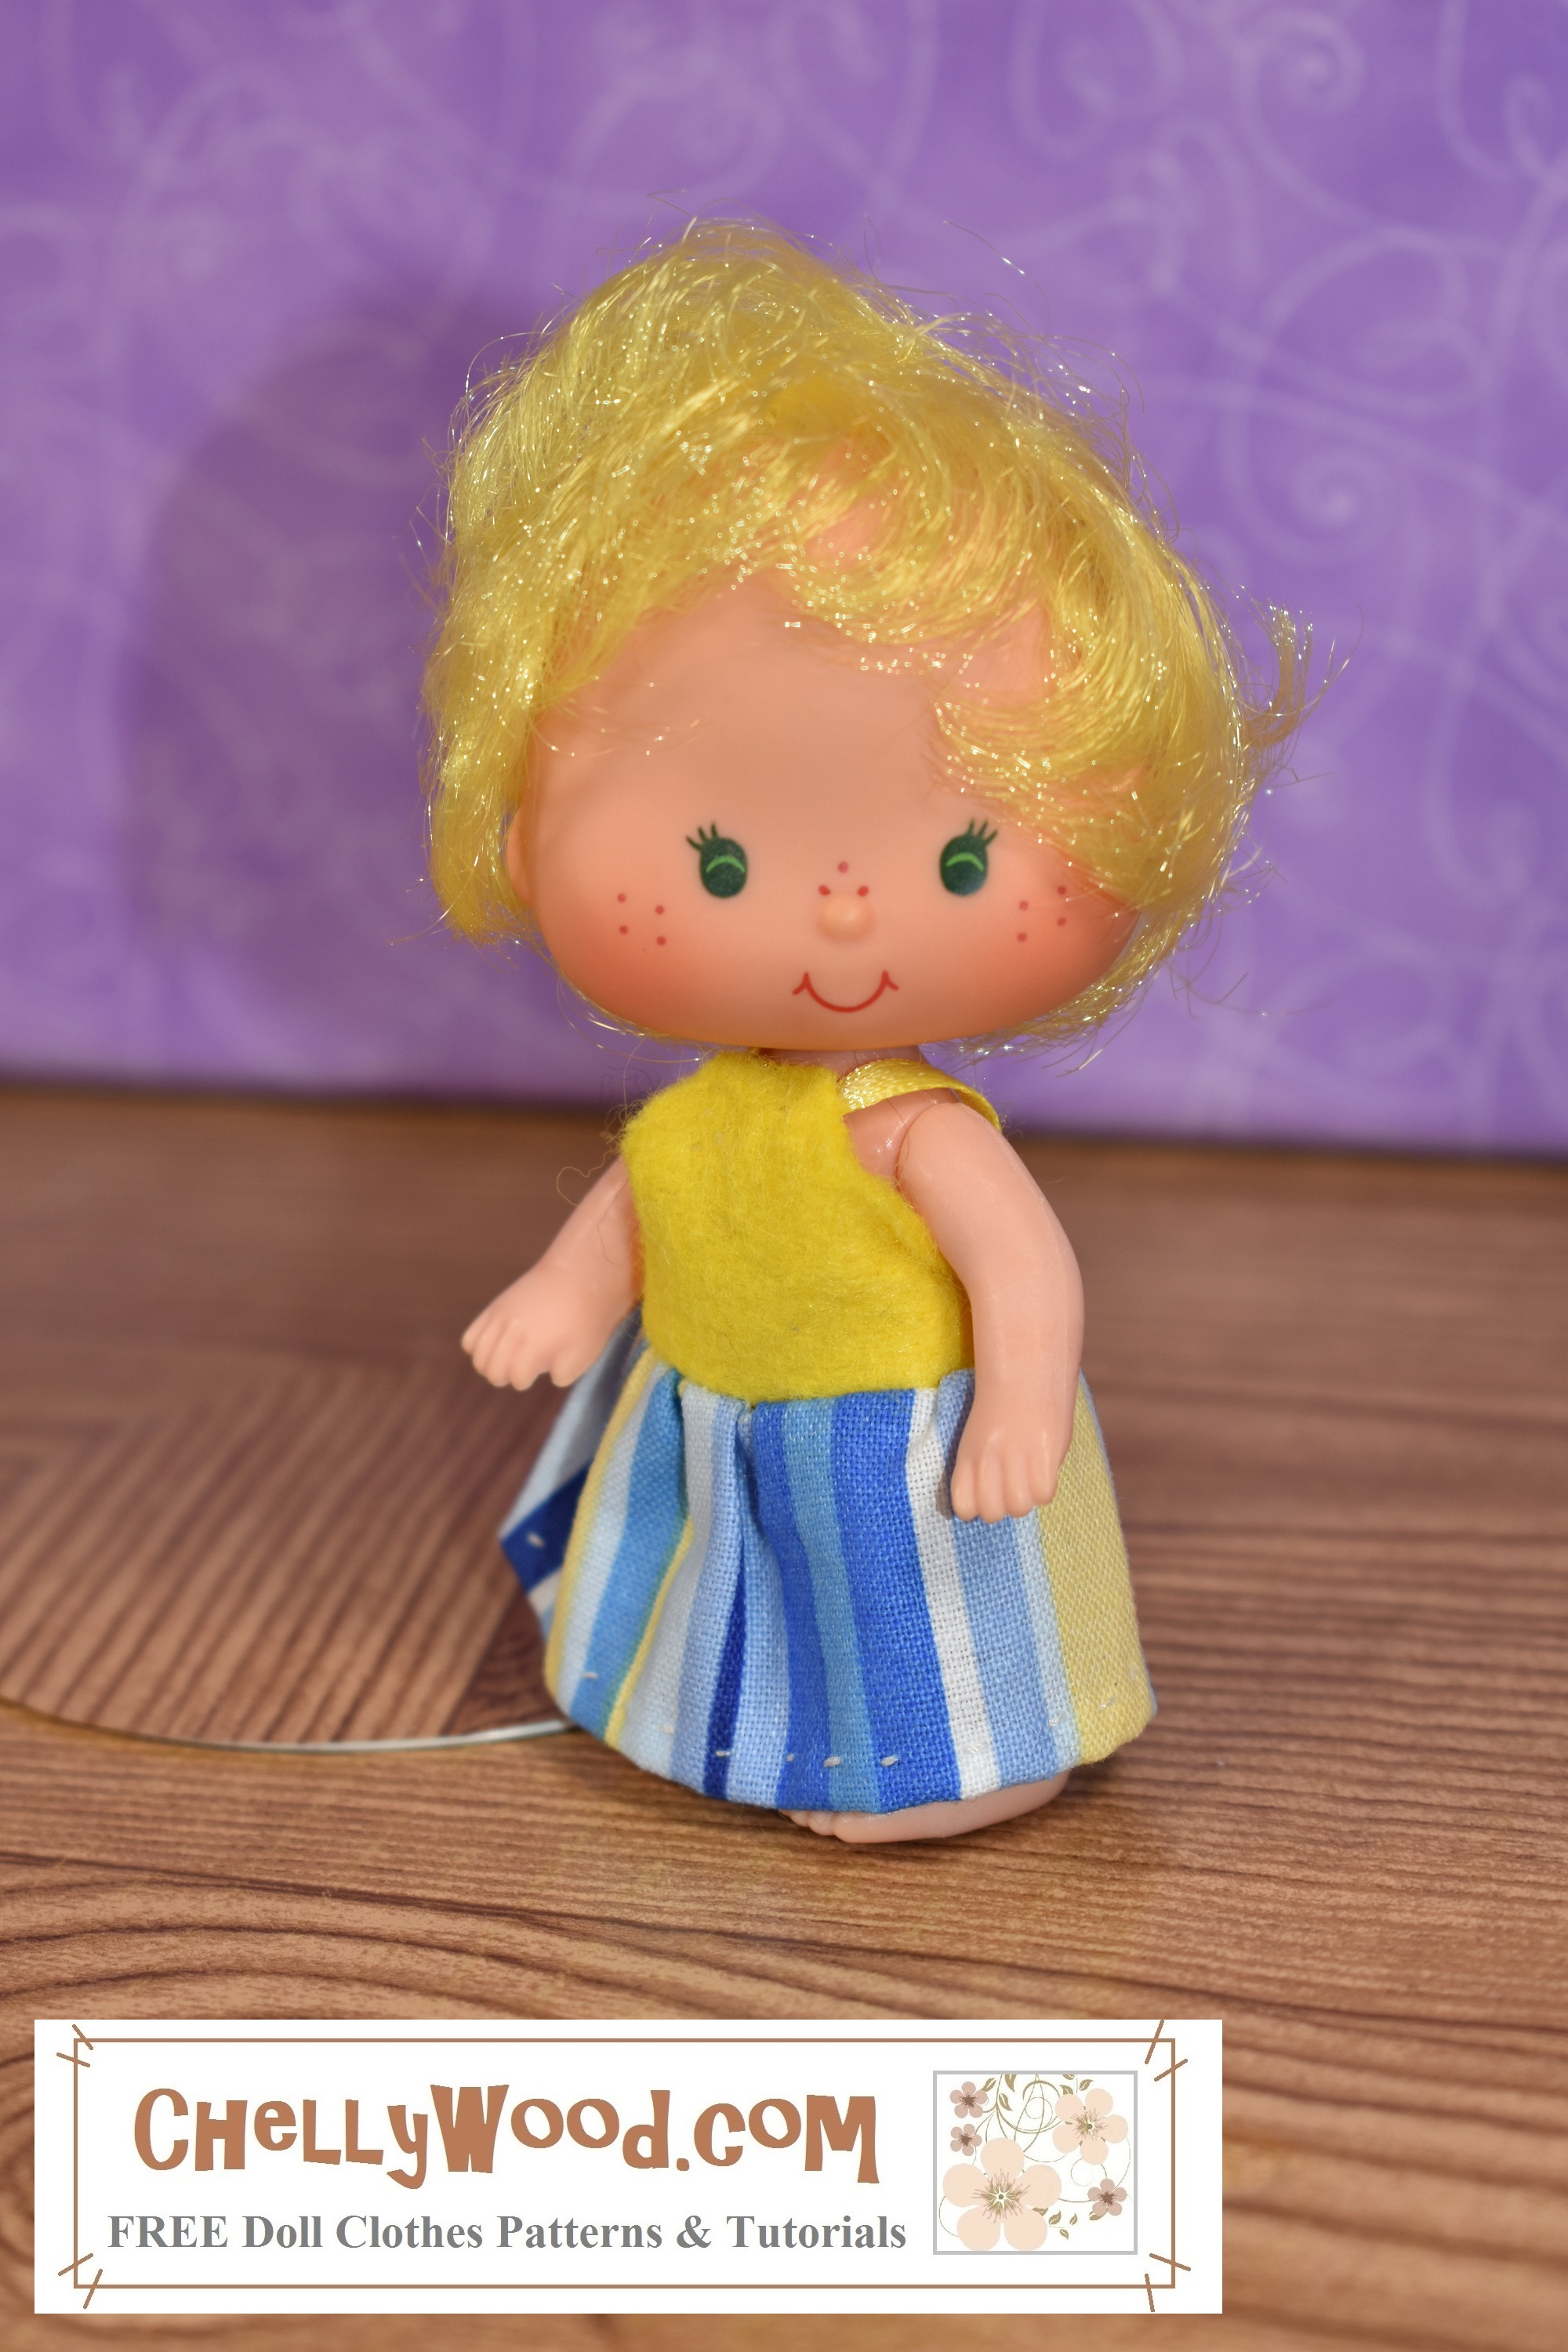 From the Strawberry Shortcake vintage dolls collection of the 1970's, here we see Butter Cream wearing a very tiny sun dress for baby-sized miniature Strawberry Shortcake dolls. (She stands 3.5 inches or 9 cm tall.) Do you have a very tiny doll you need to make some doll clothes for? Click on the link in the caption, and it will take you to a page where you can download and print all the free printable sewing patterns for making these doll clothes, along with links to tutorial videos that show you how to make this outfit.